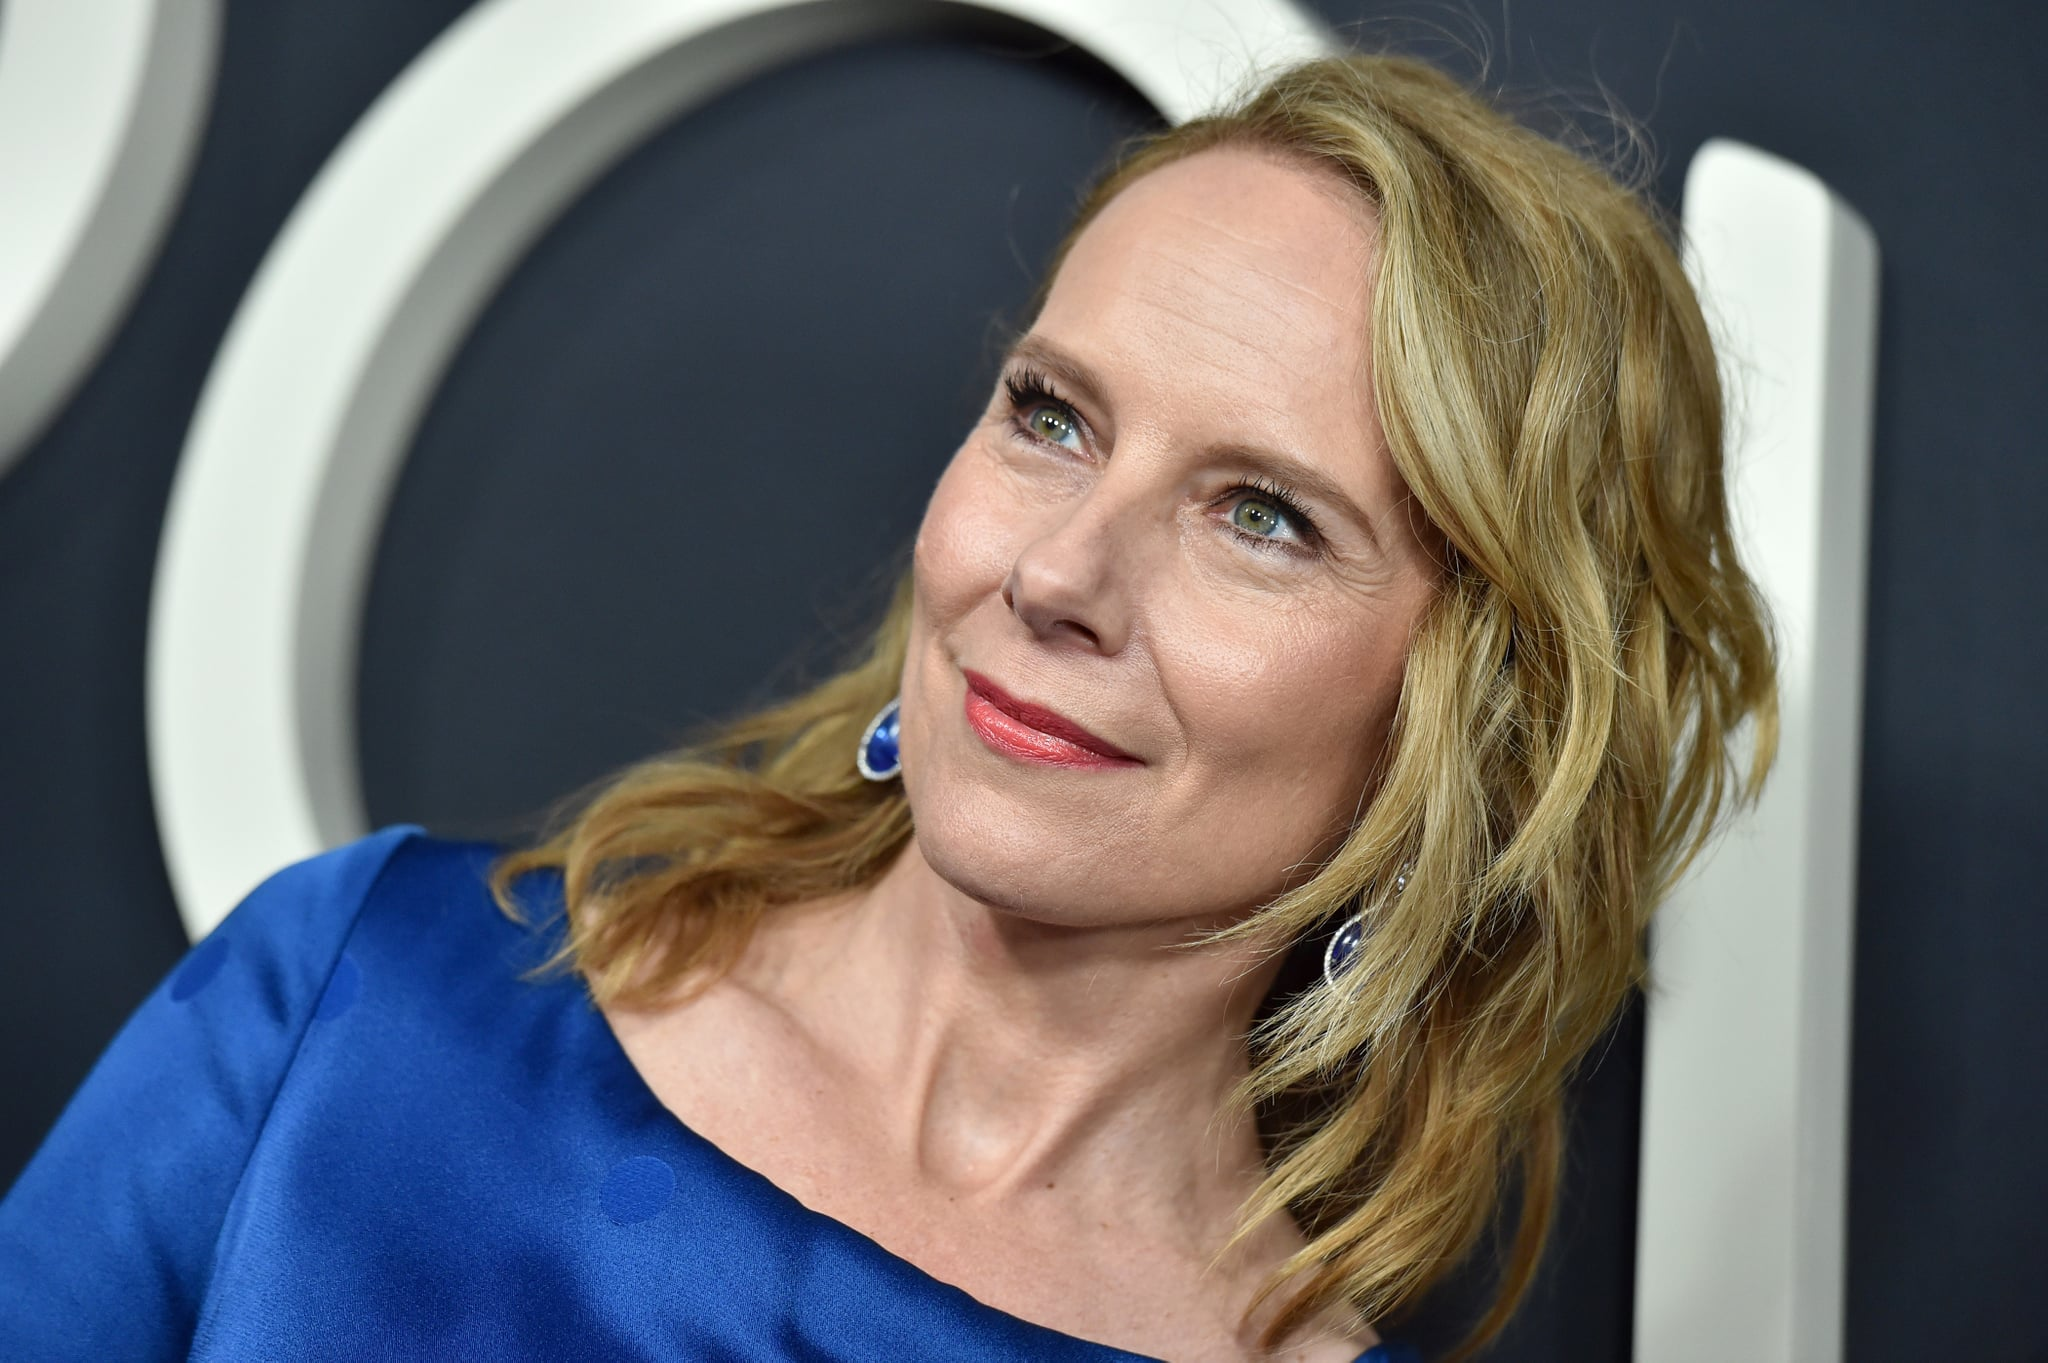 BEVERLY HILLS, CA - OCTOBER 08:  Amy Ryan attends Amazon Studios of Angeles Premiere of 'Beautiful Boy' at Samuel Goldwyn Theater on October 8, 2018 in Beverly Hills, California.  (Photo by Axelle/Bauer-Griffin/FilmMagic)